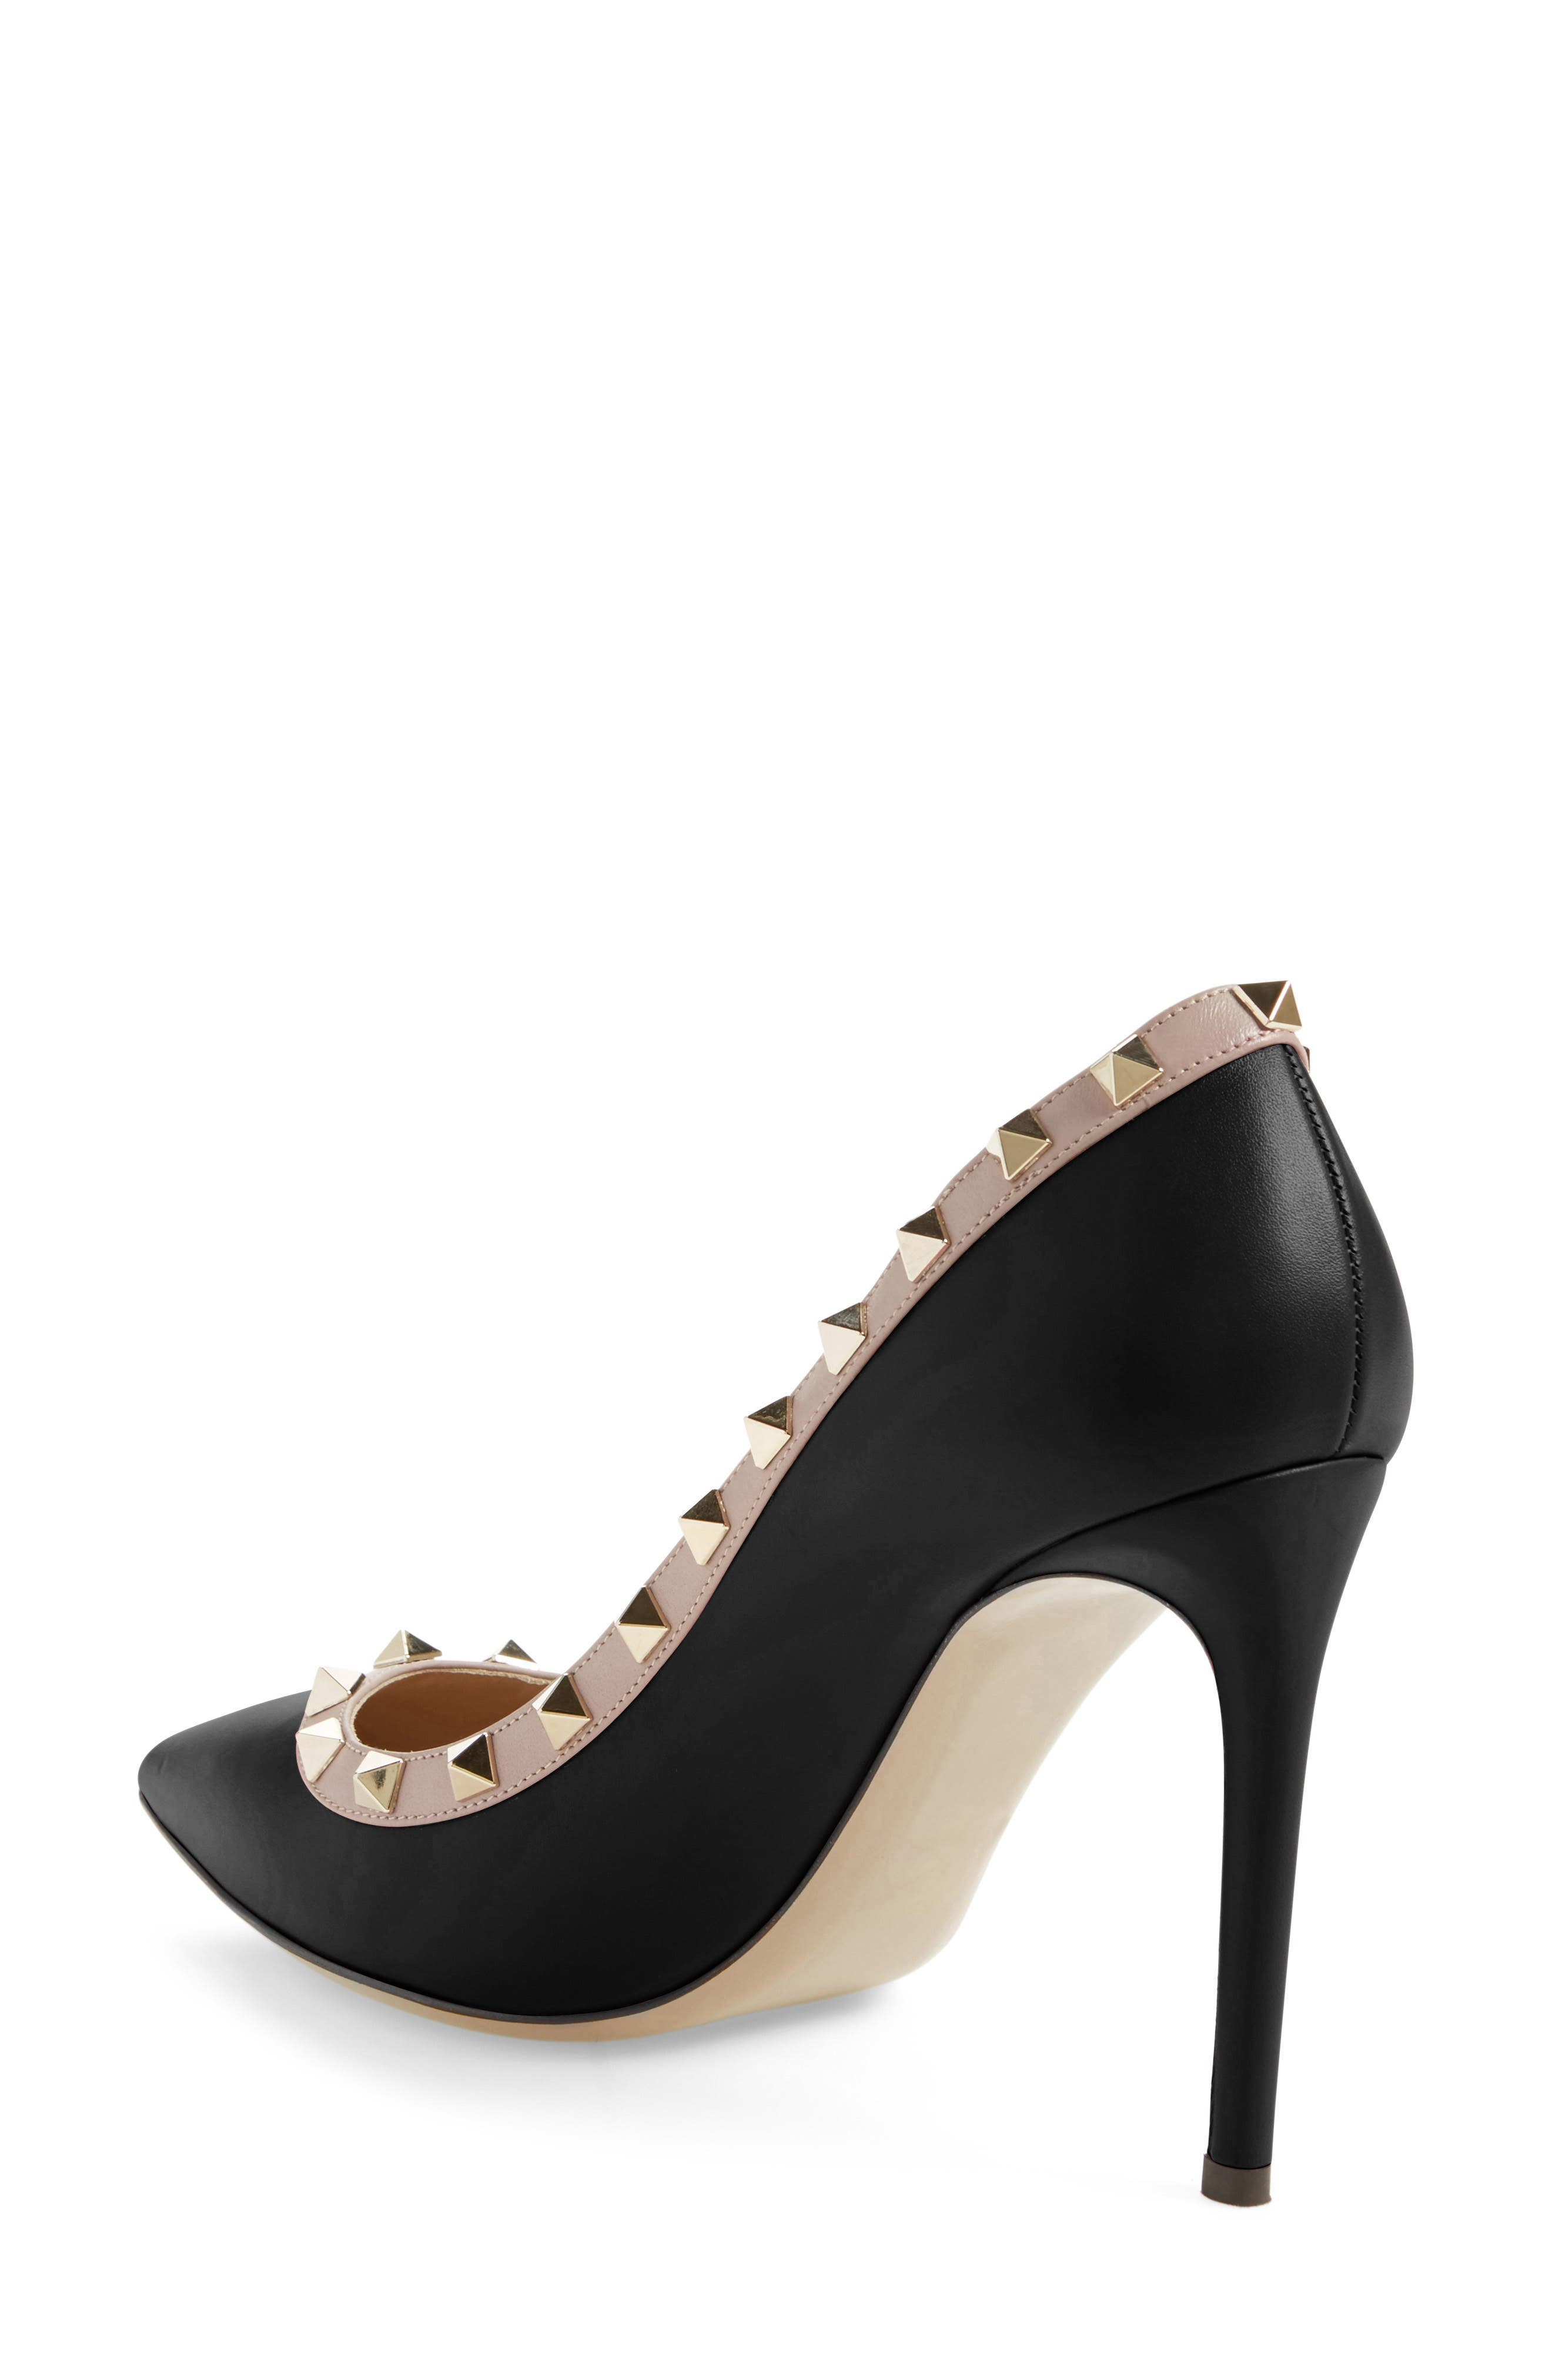 VALENTINO GARAVANI, Rockstud Pointy Toe Pump, Alternate thumbnail 2, color, BLACK/ NUDE LEATHER